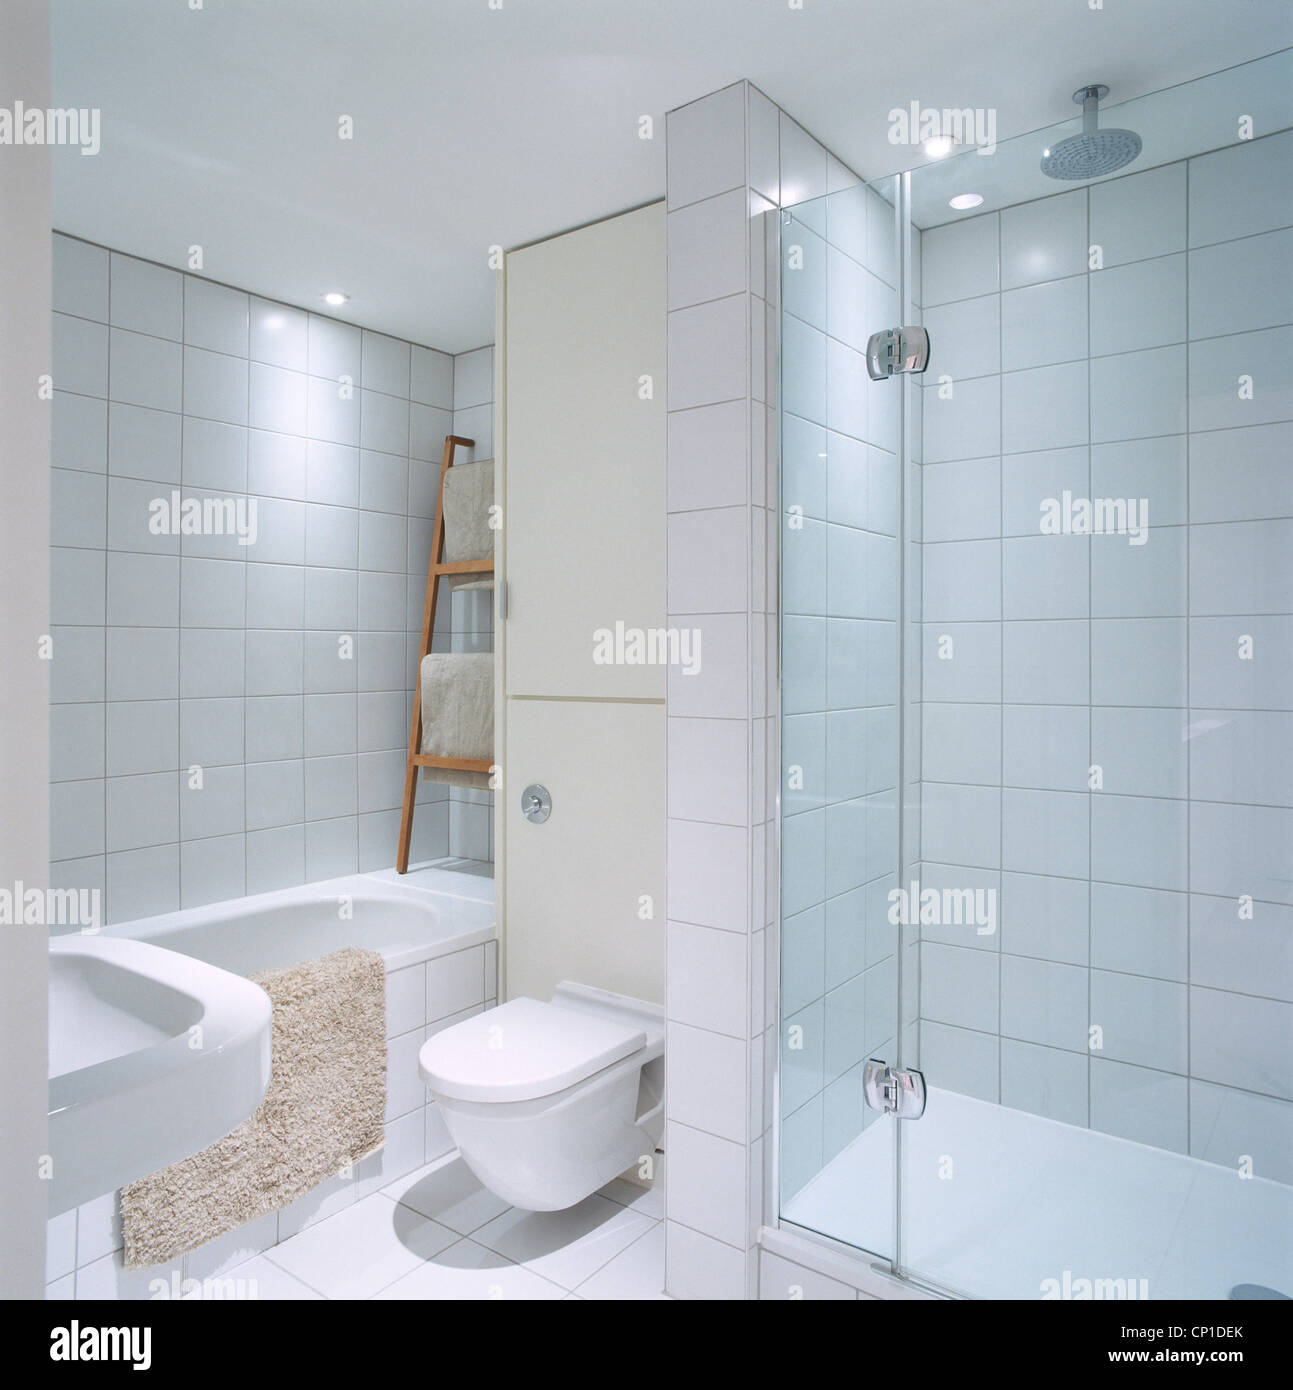 A modern white bathroom with tiled walls and floor, shower, toilet ...